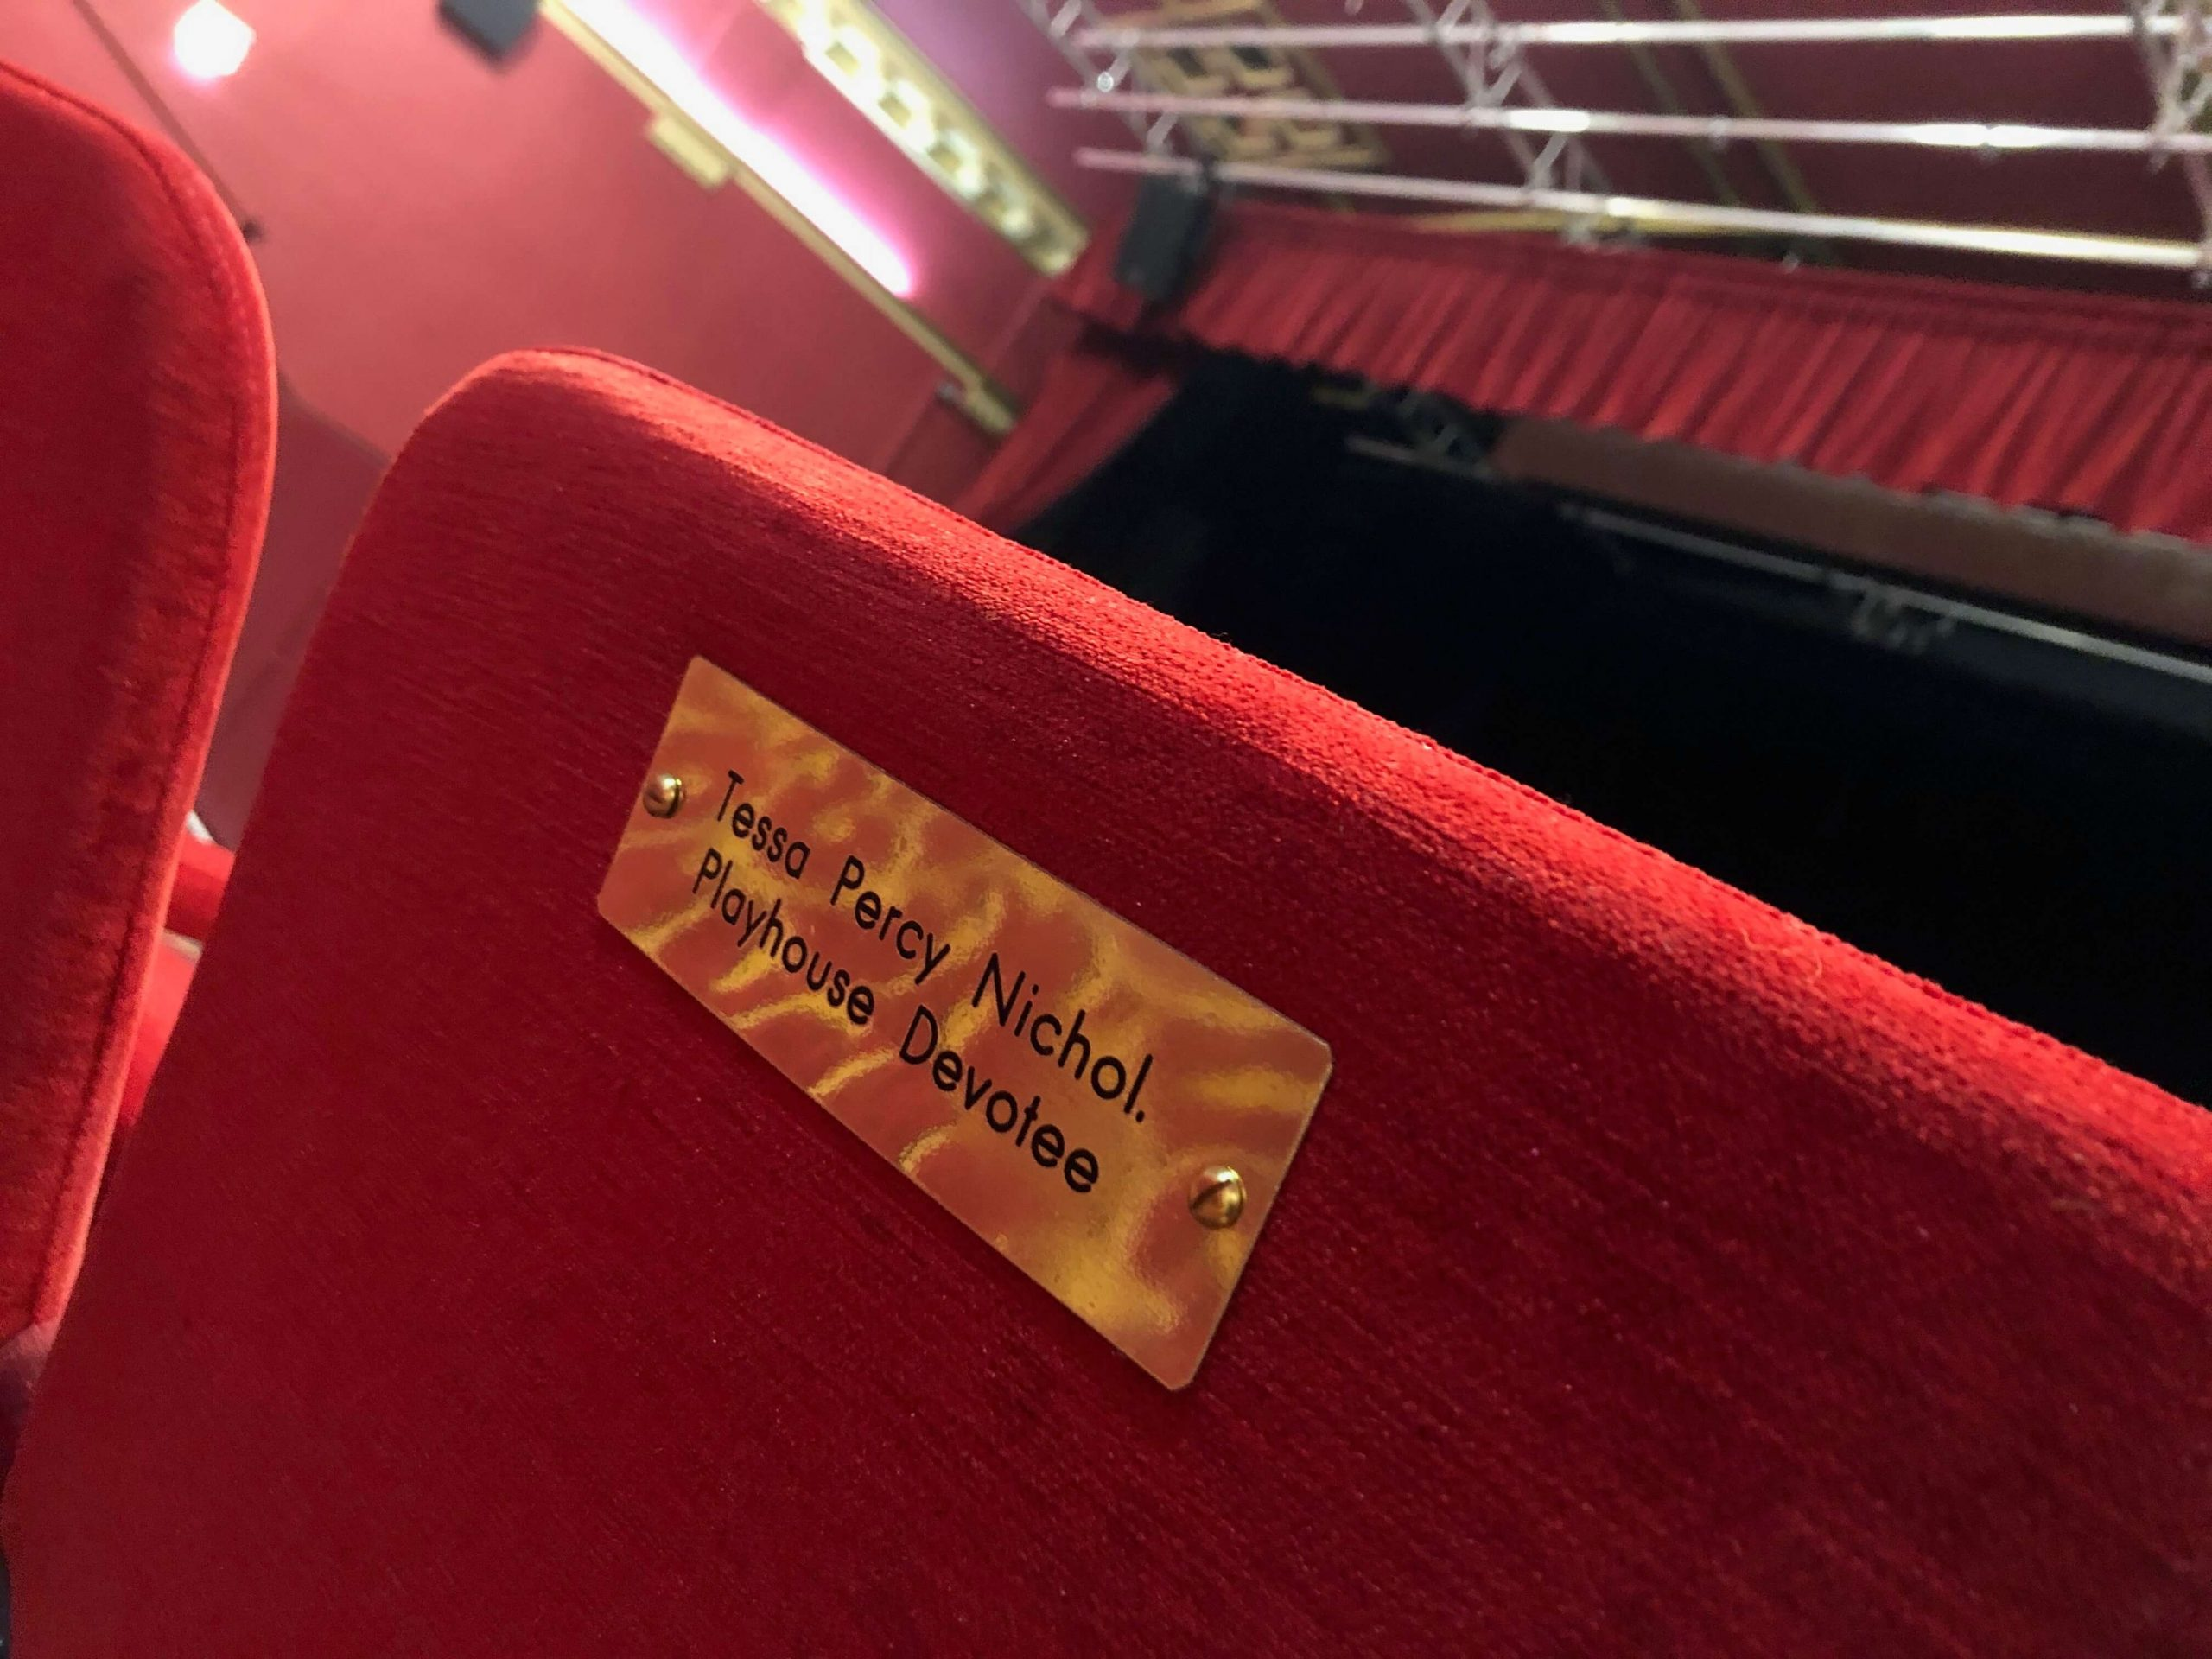 Traditional brass plaque seating signage by Picto